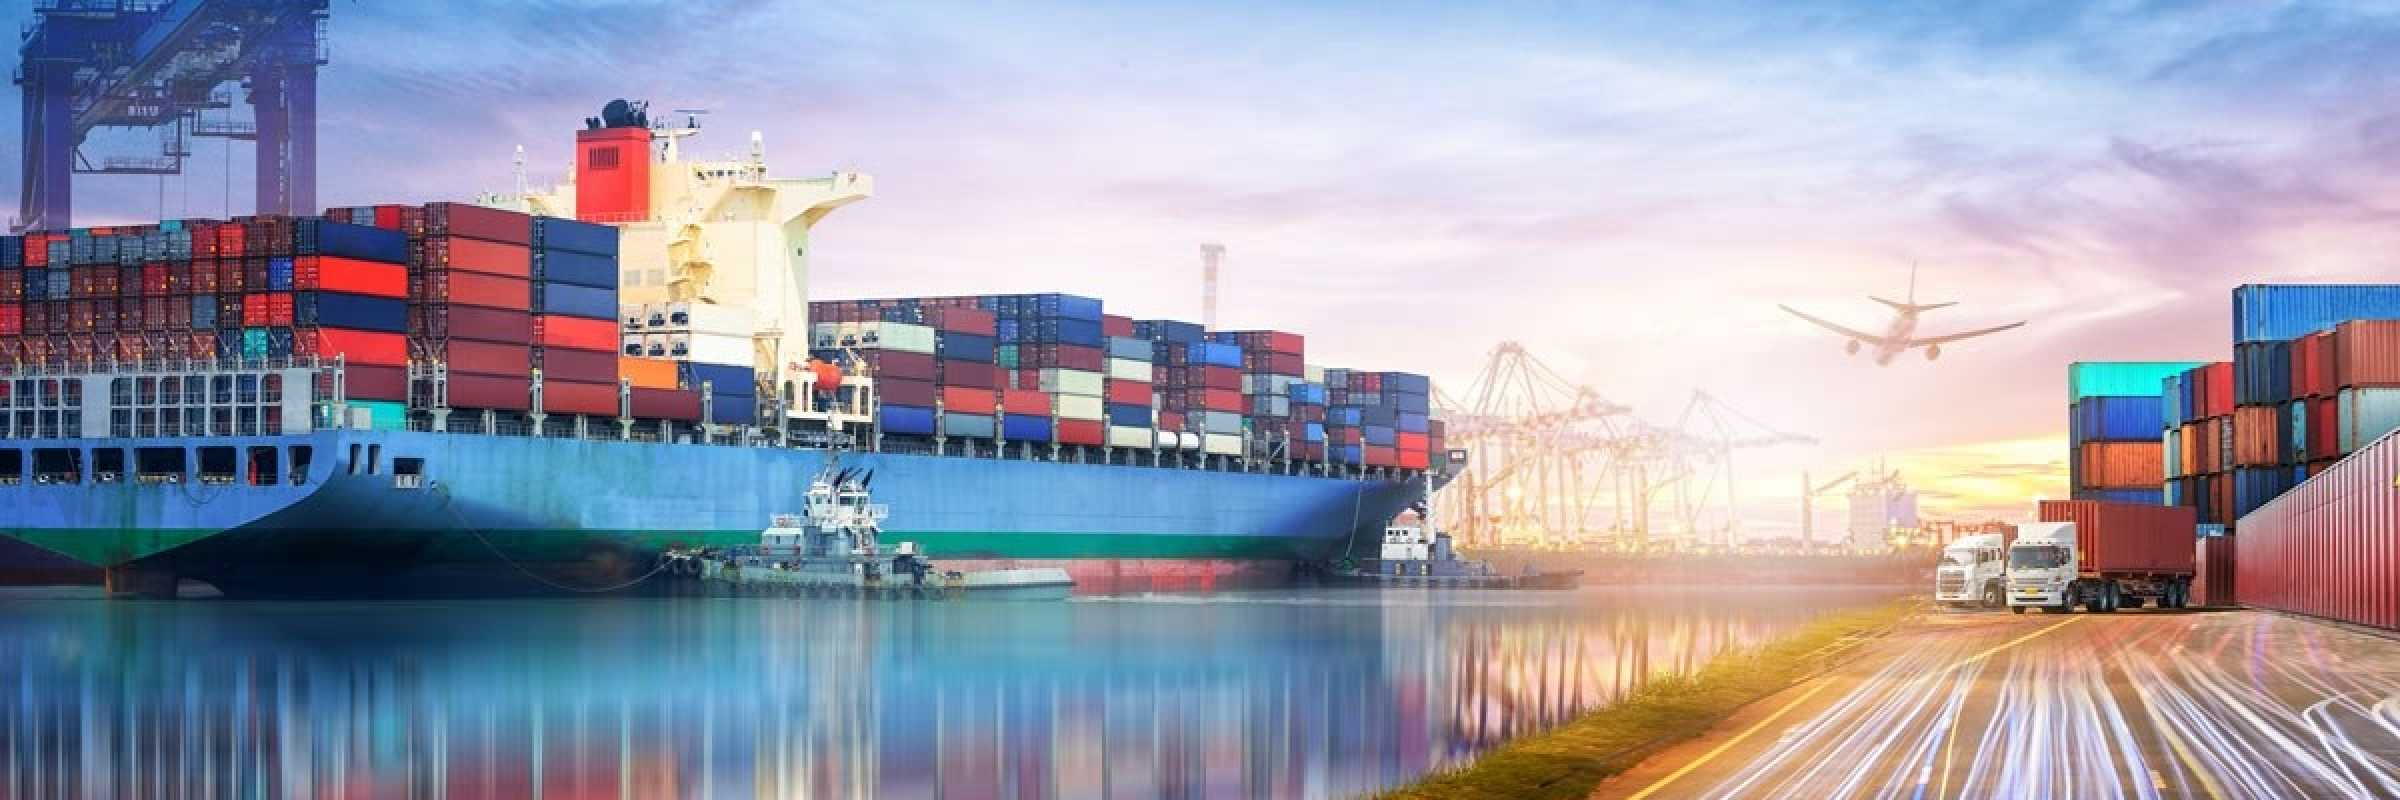 Reduction in CO2 emissions from container shipping: Clean Cargo